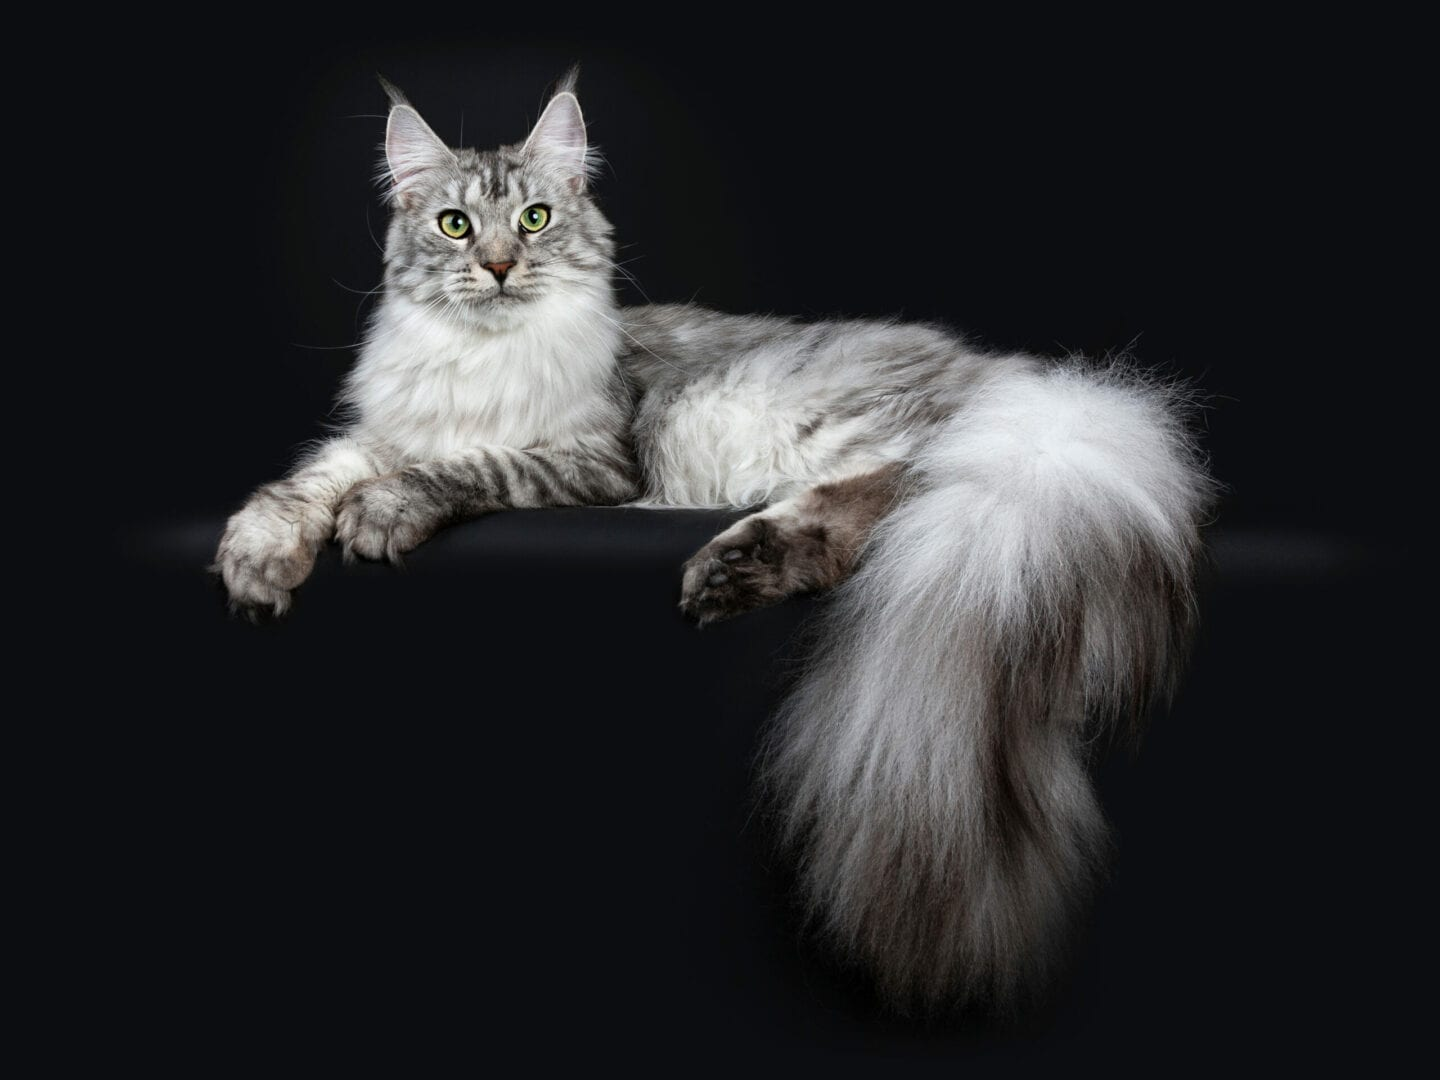 fluffy tails